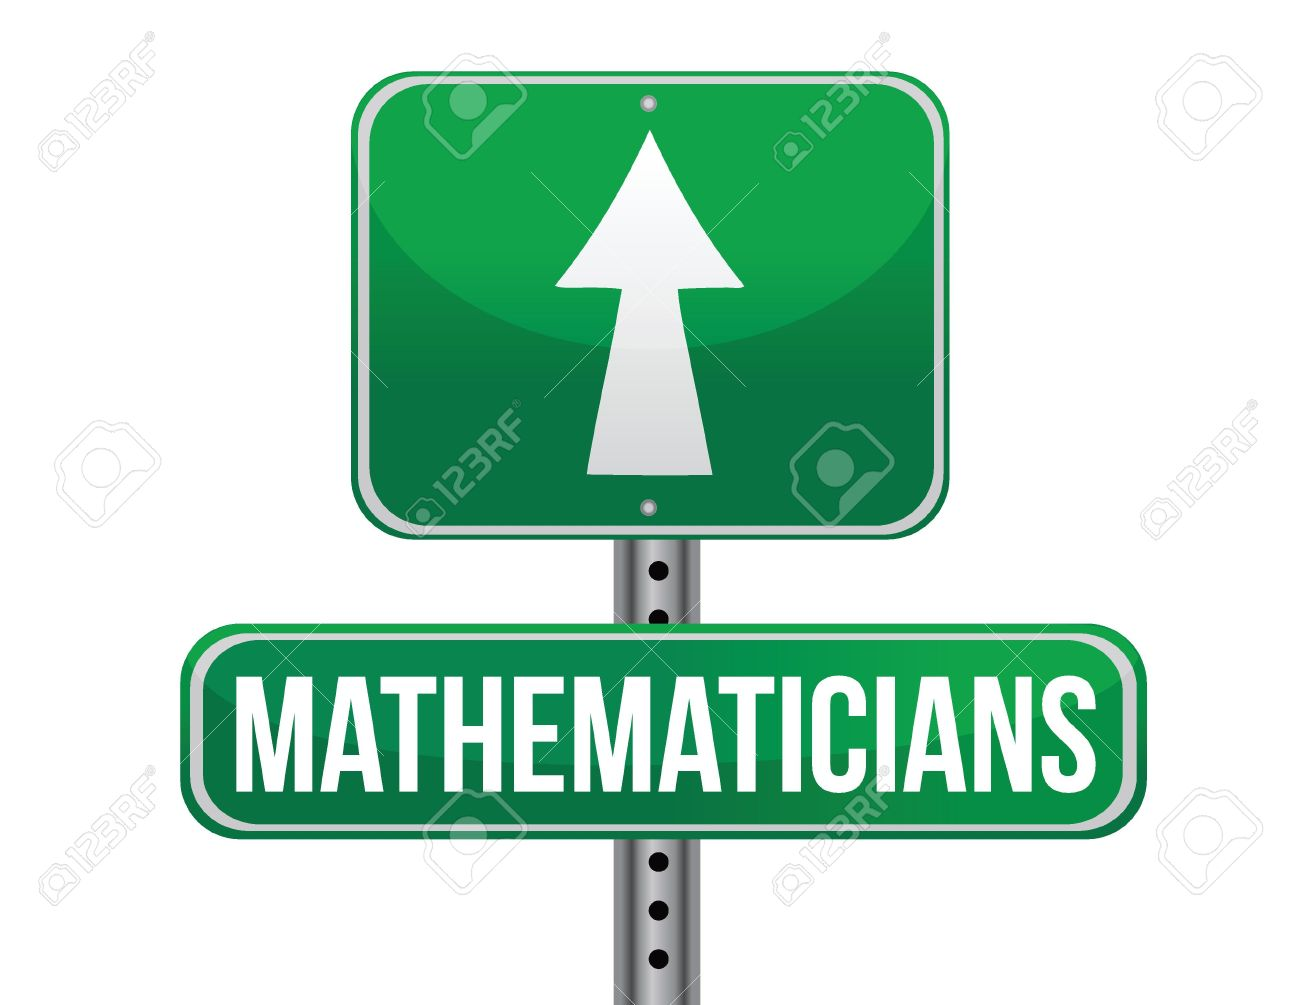 Mathematicians Road Sign Illustration Design Over A White.